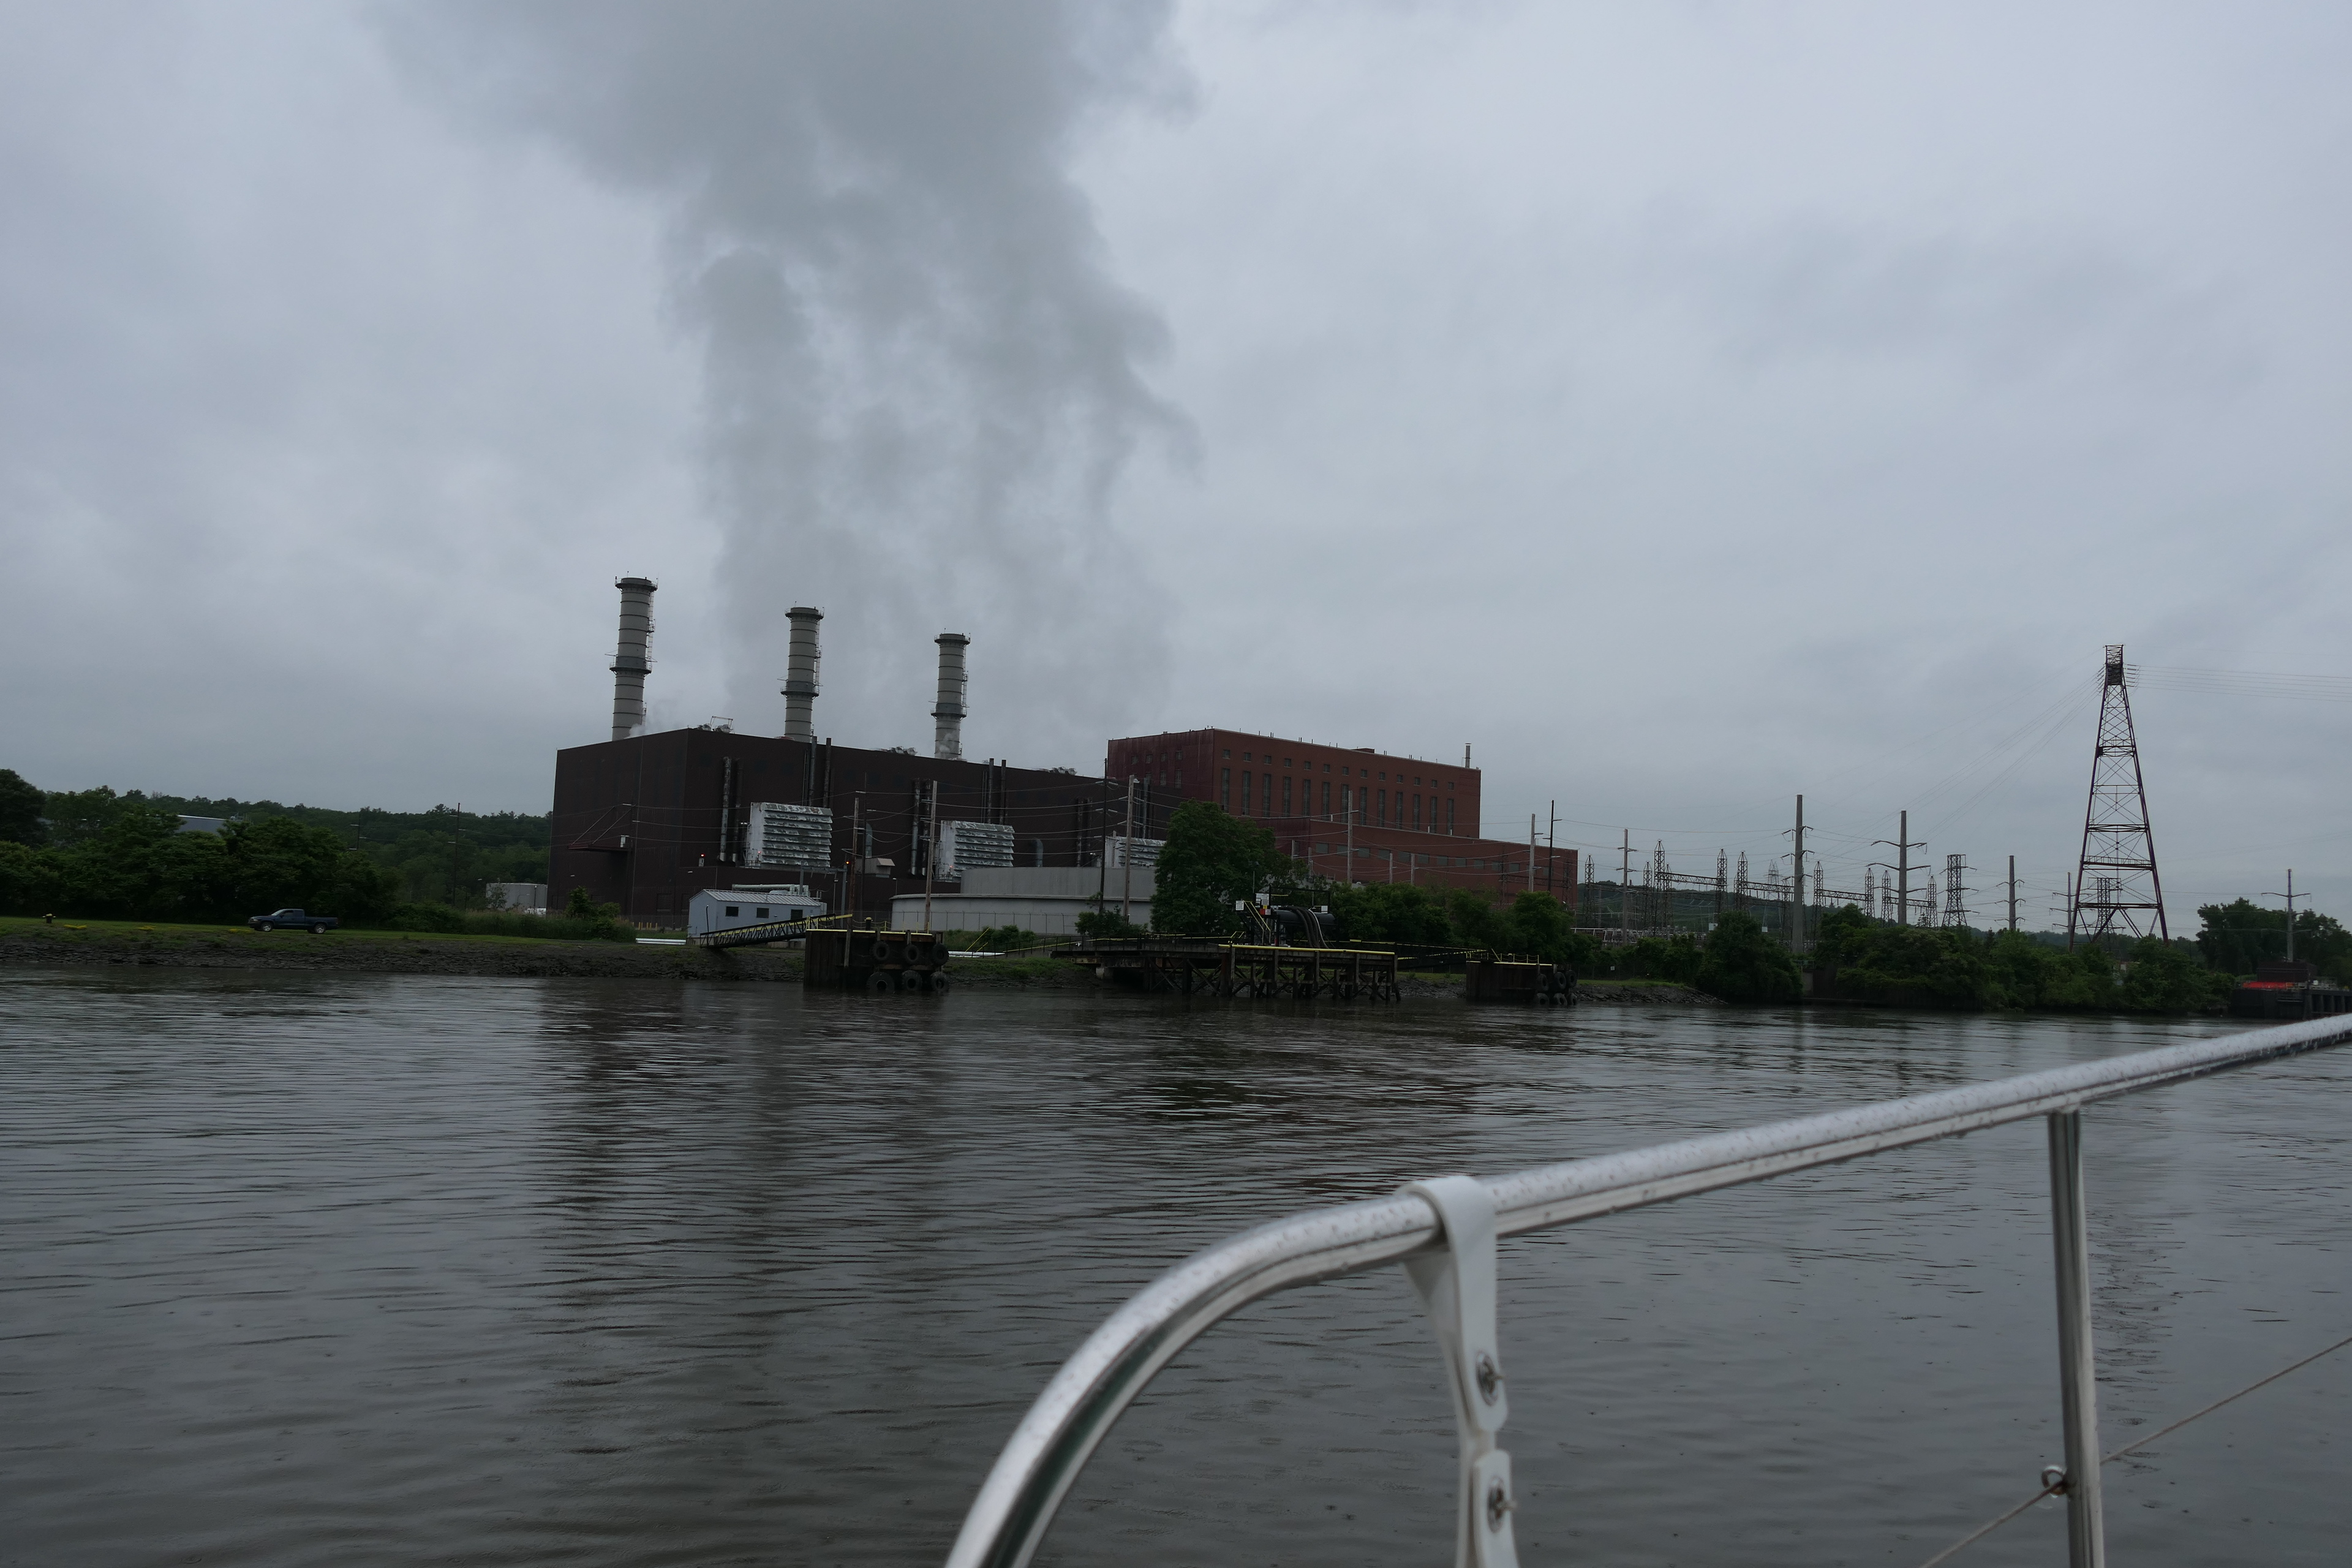 Steam rising from a power plant